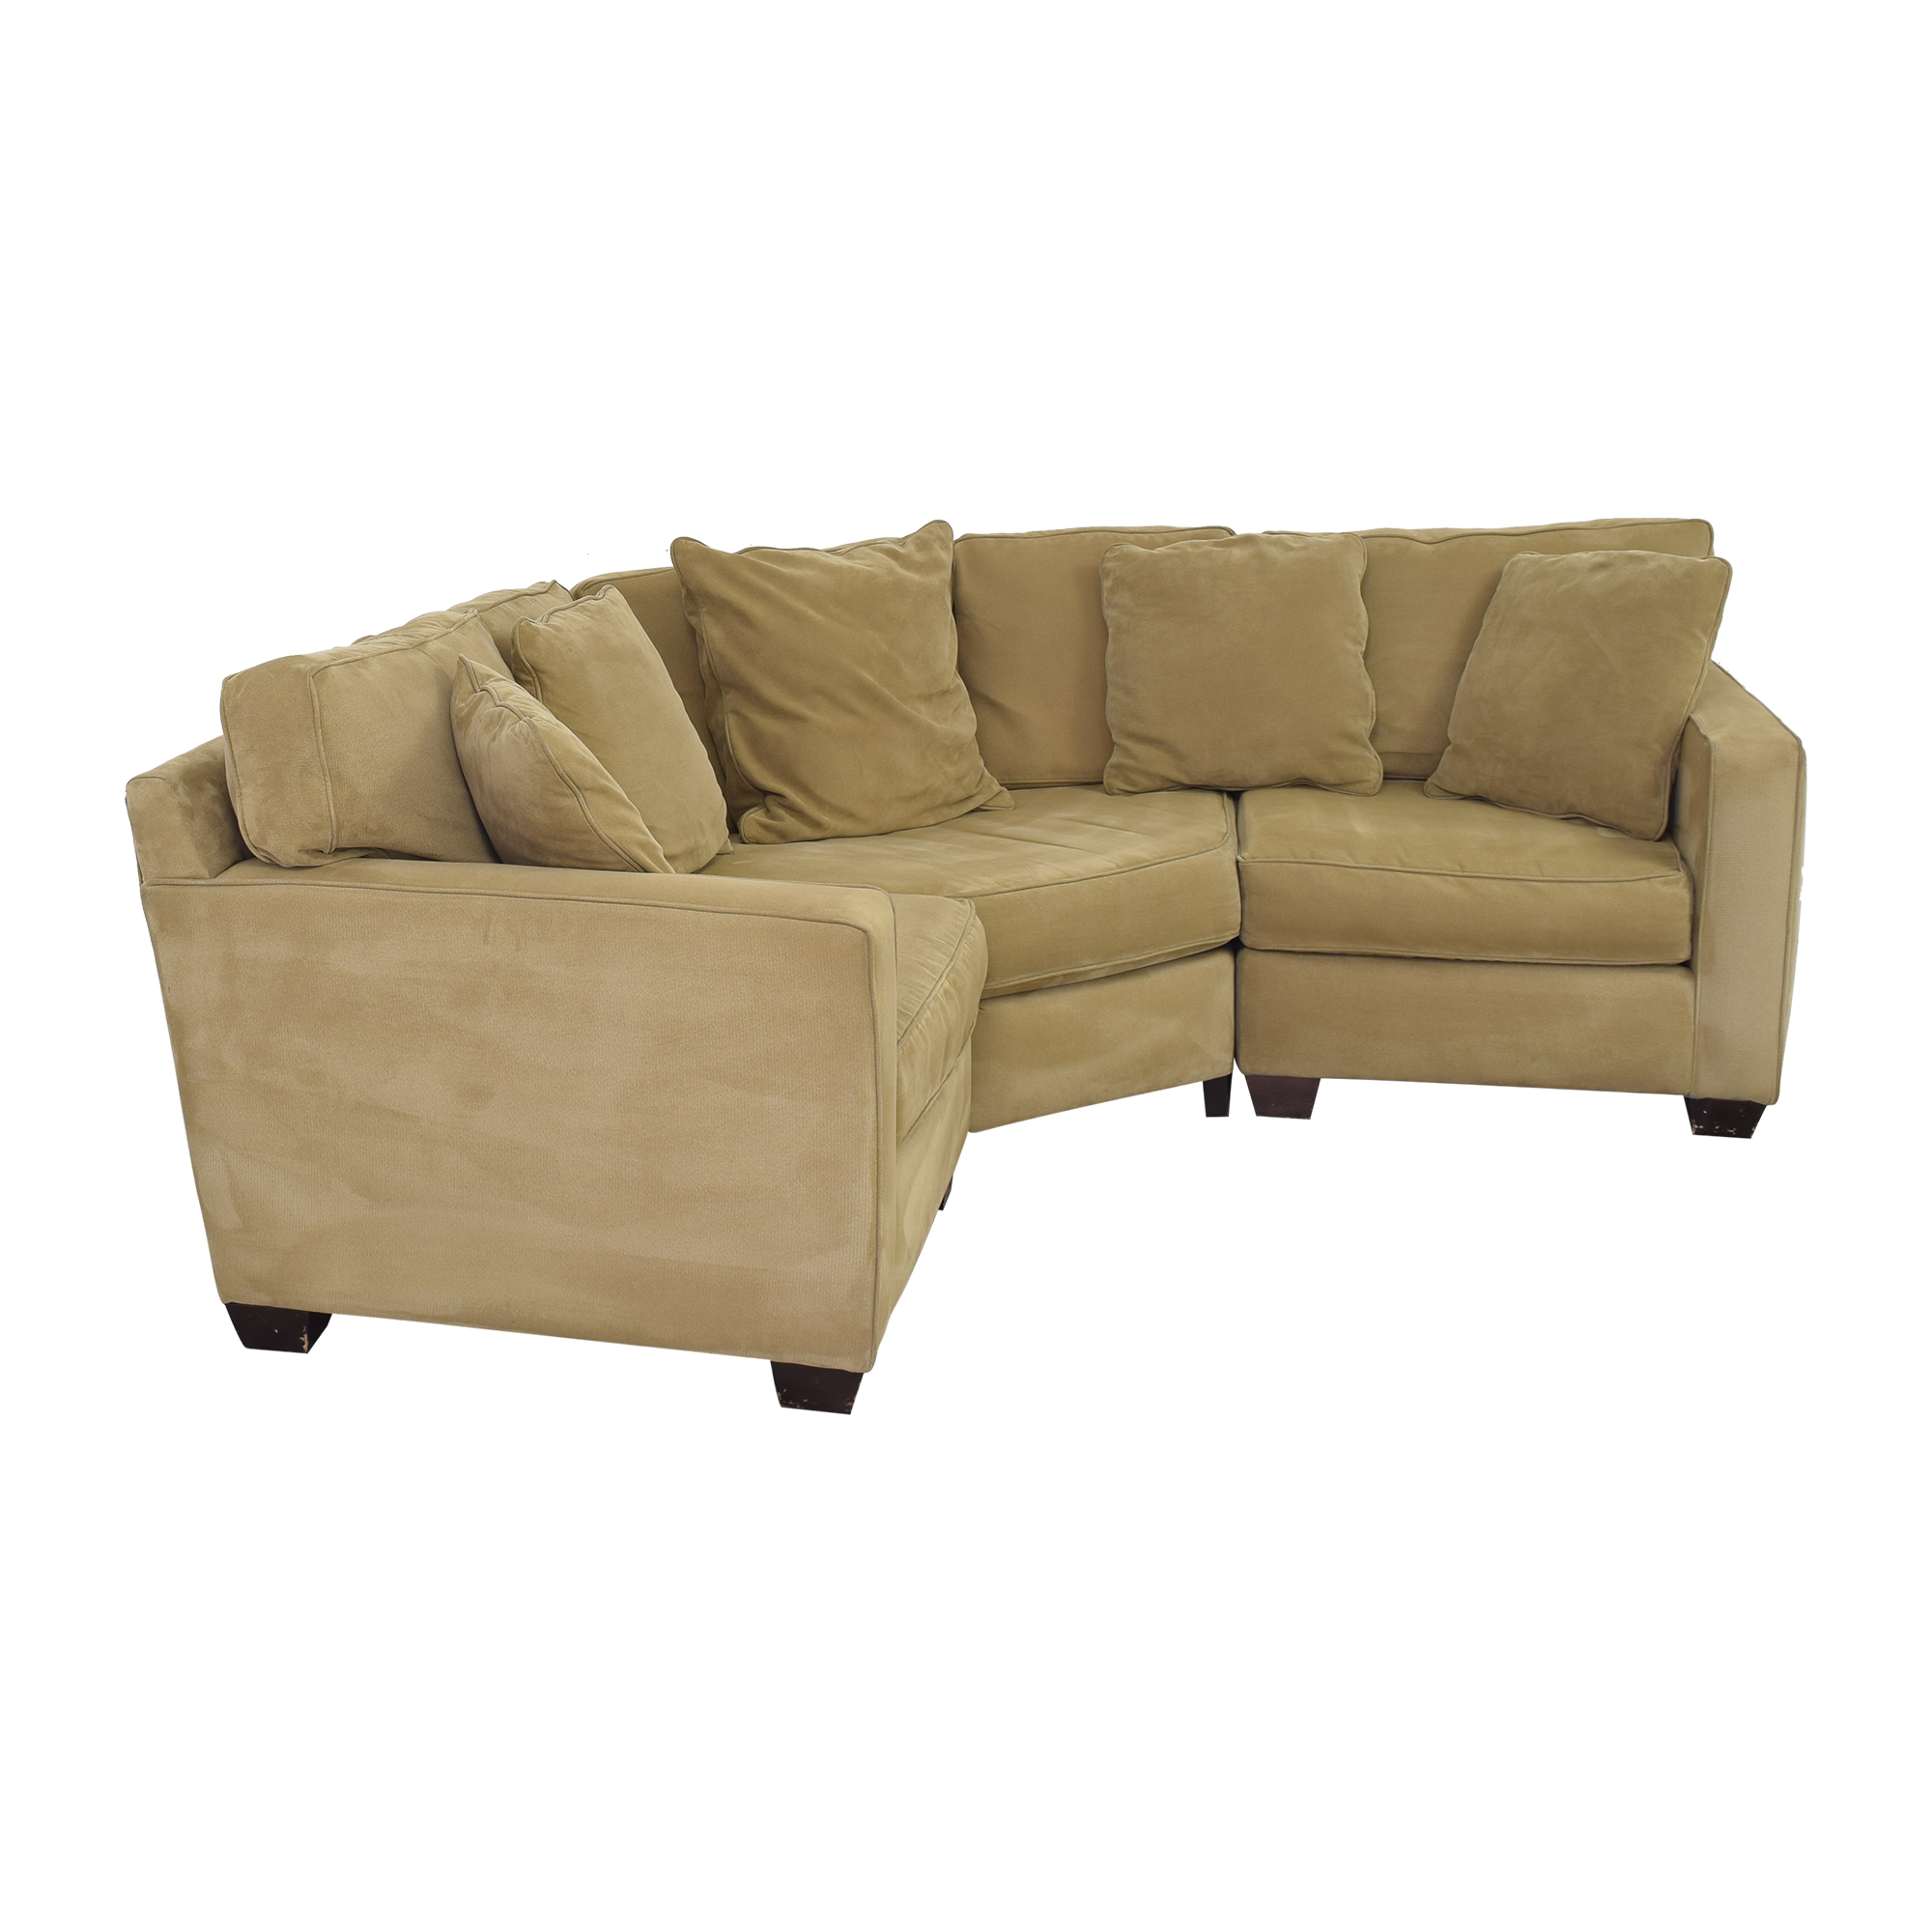 Jonathan Louis Jonathan Louis Corner Sectional Sofa for sale